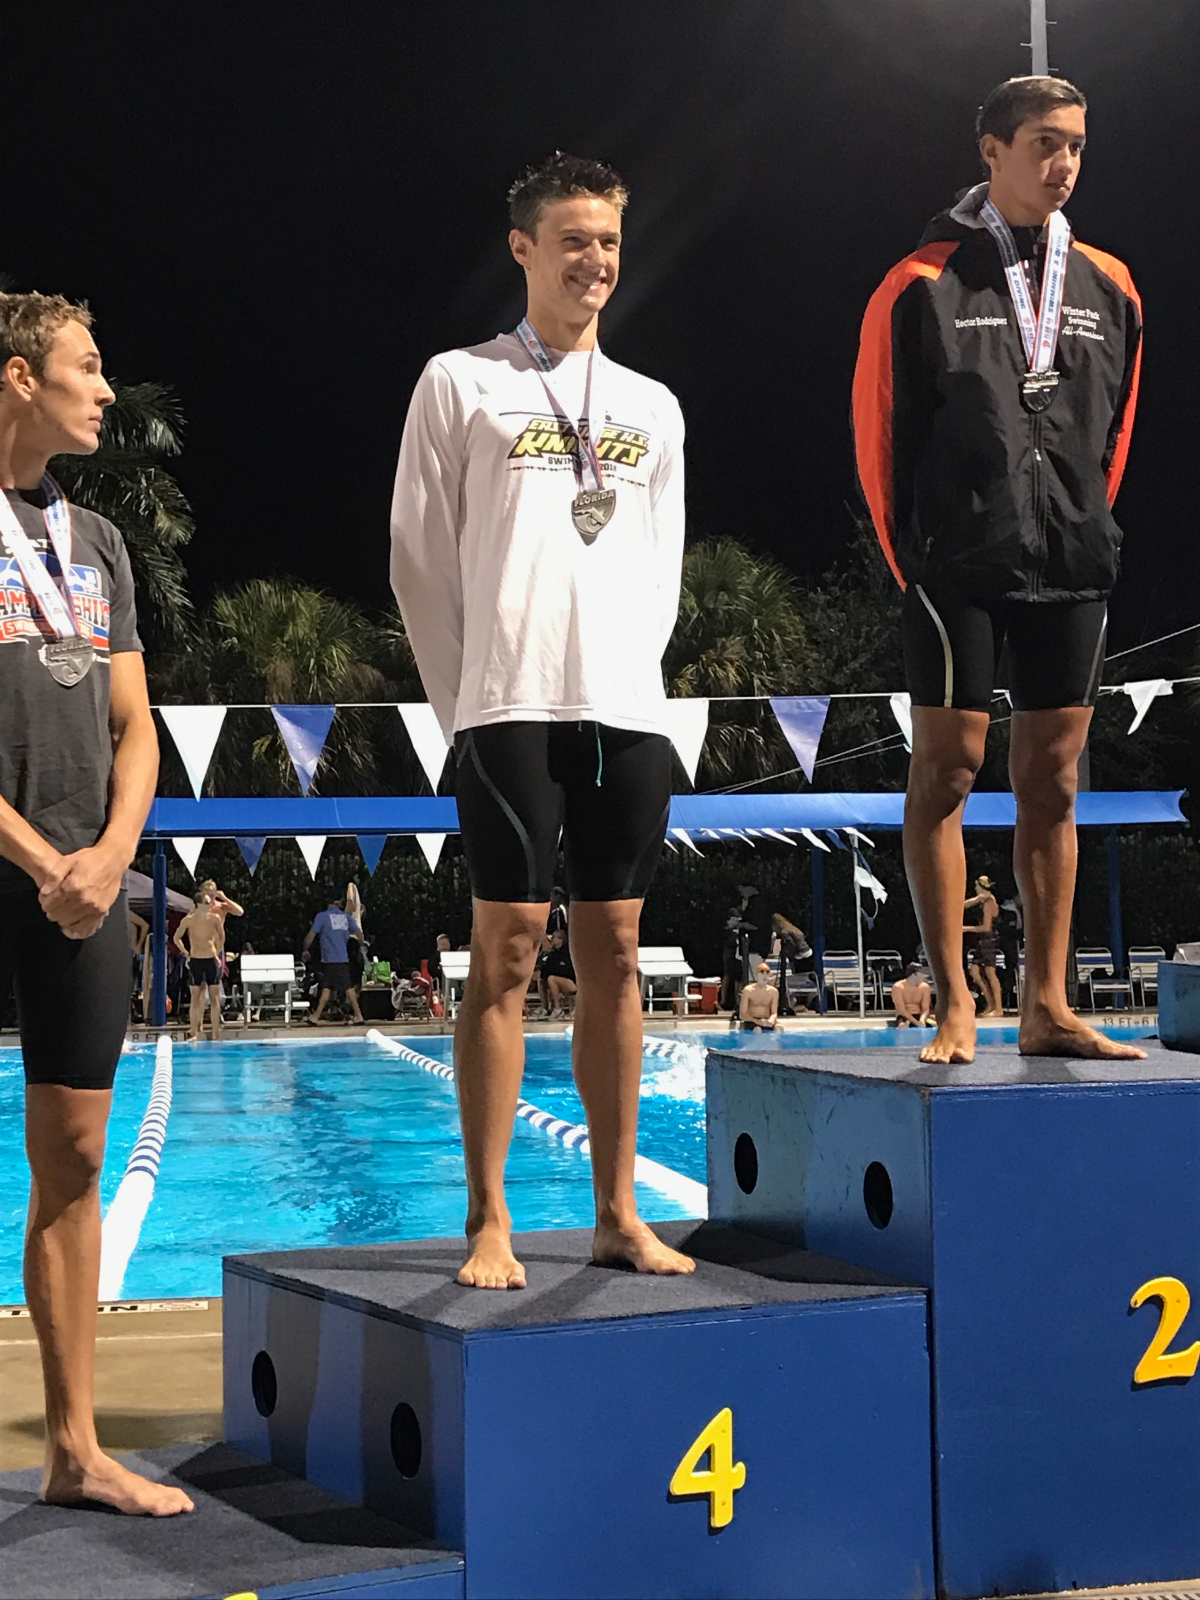 Jake Moretti places 4th in state swimming